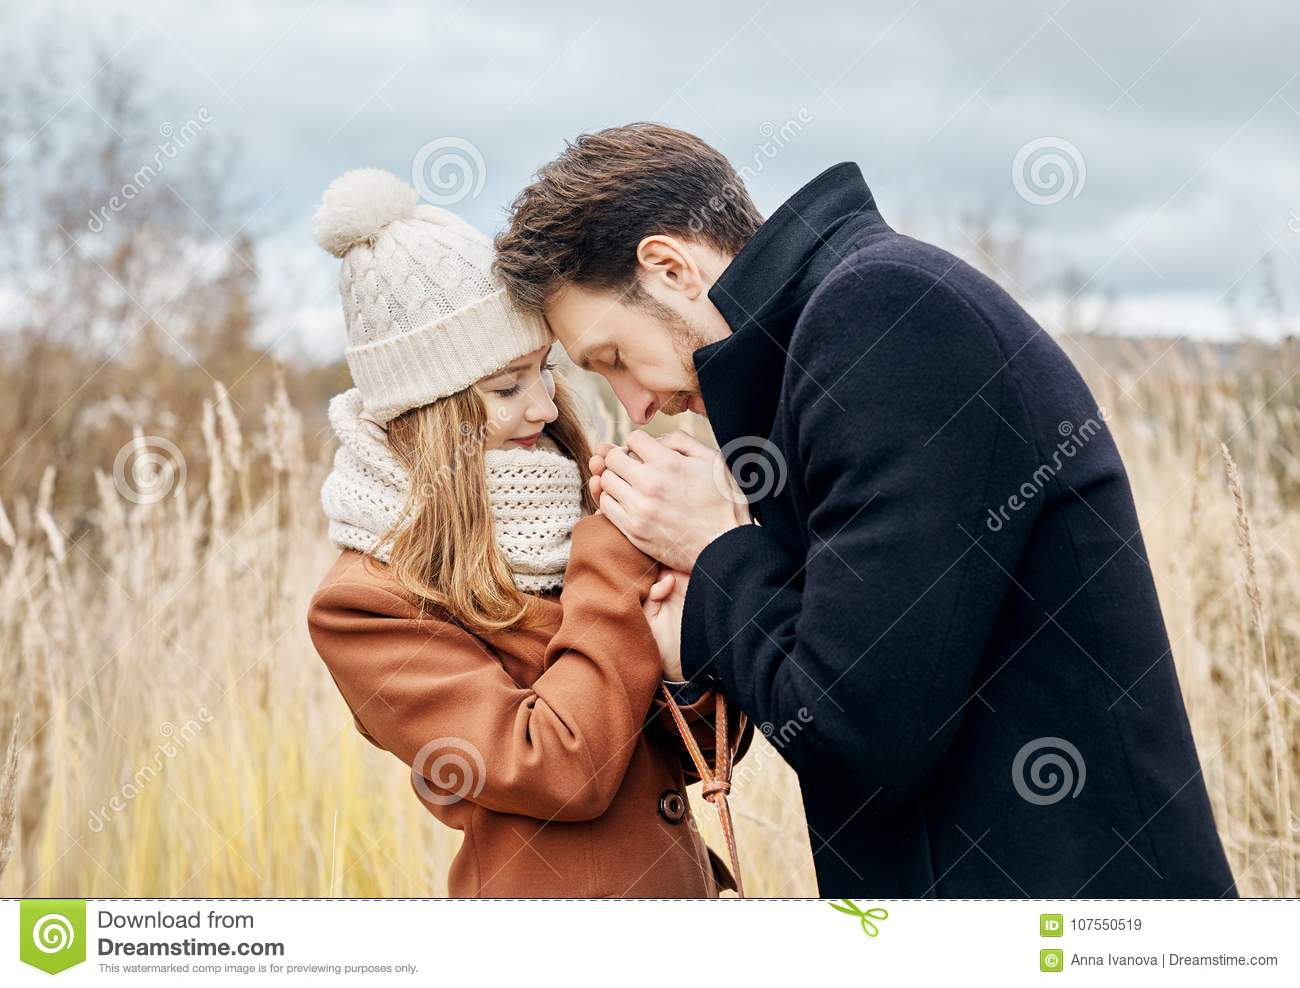 Couple in love walking in the autumn Park, cool fall weather. A man and a woman embrace and kiss, love and affection yellow autumn